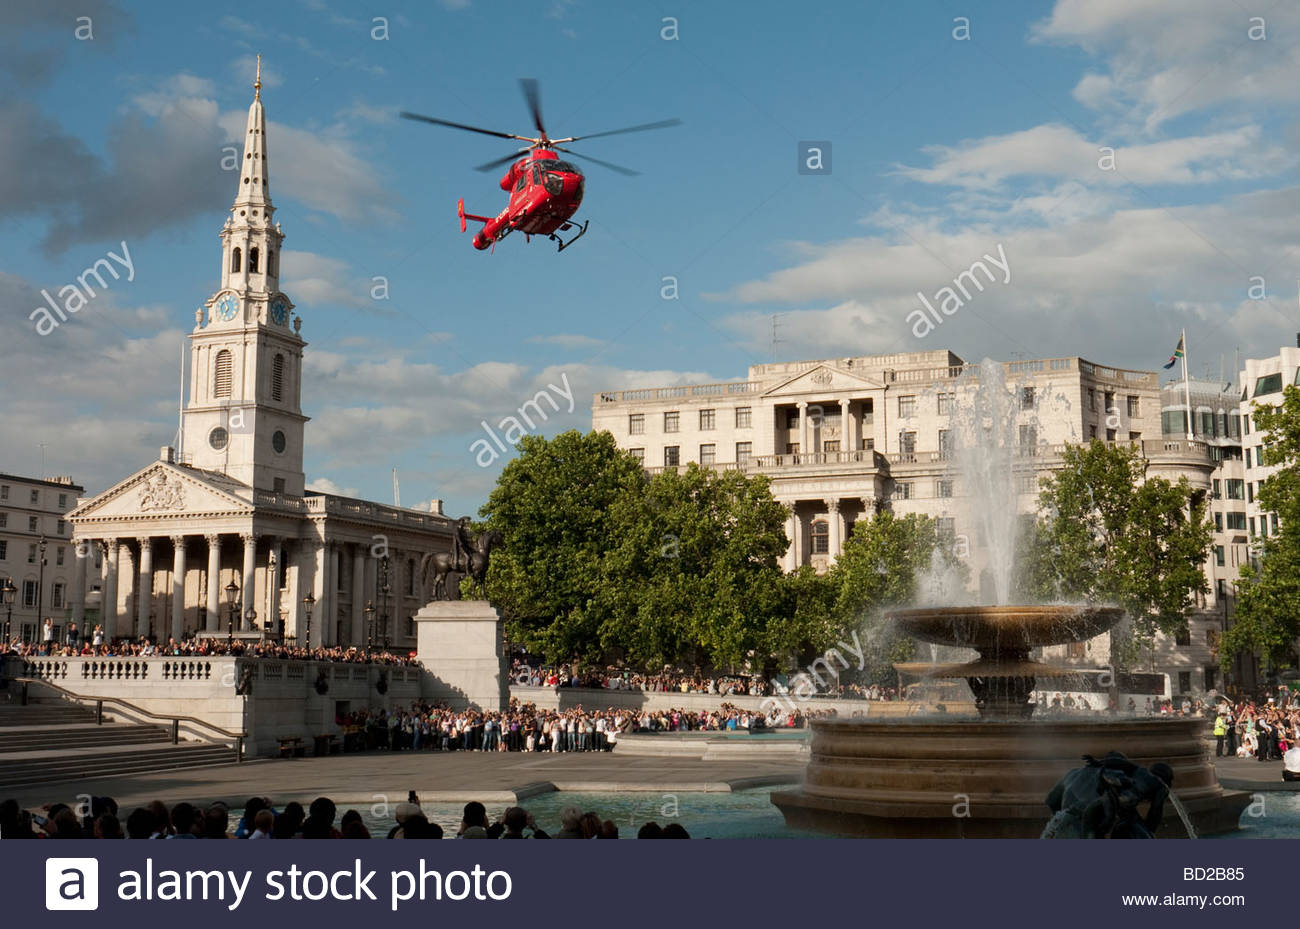 Air ambulance helicopter landing in Trafalgar Square London to aid sick man in the nearby National Gallery - Stock Image